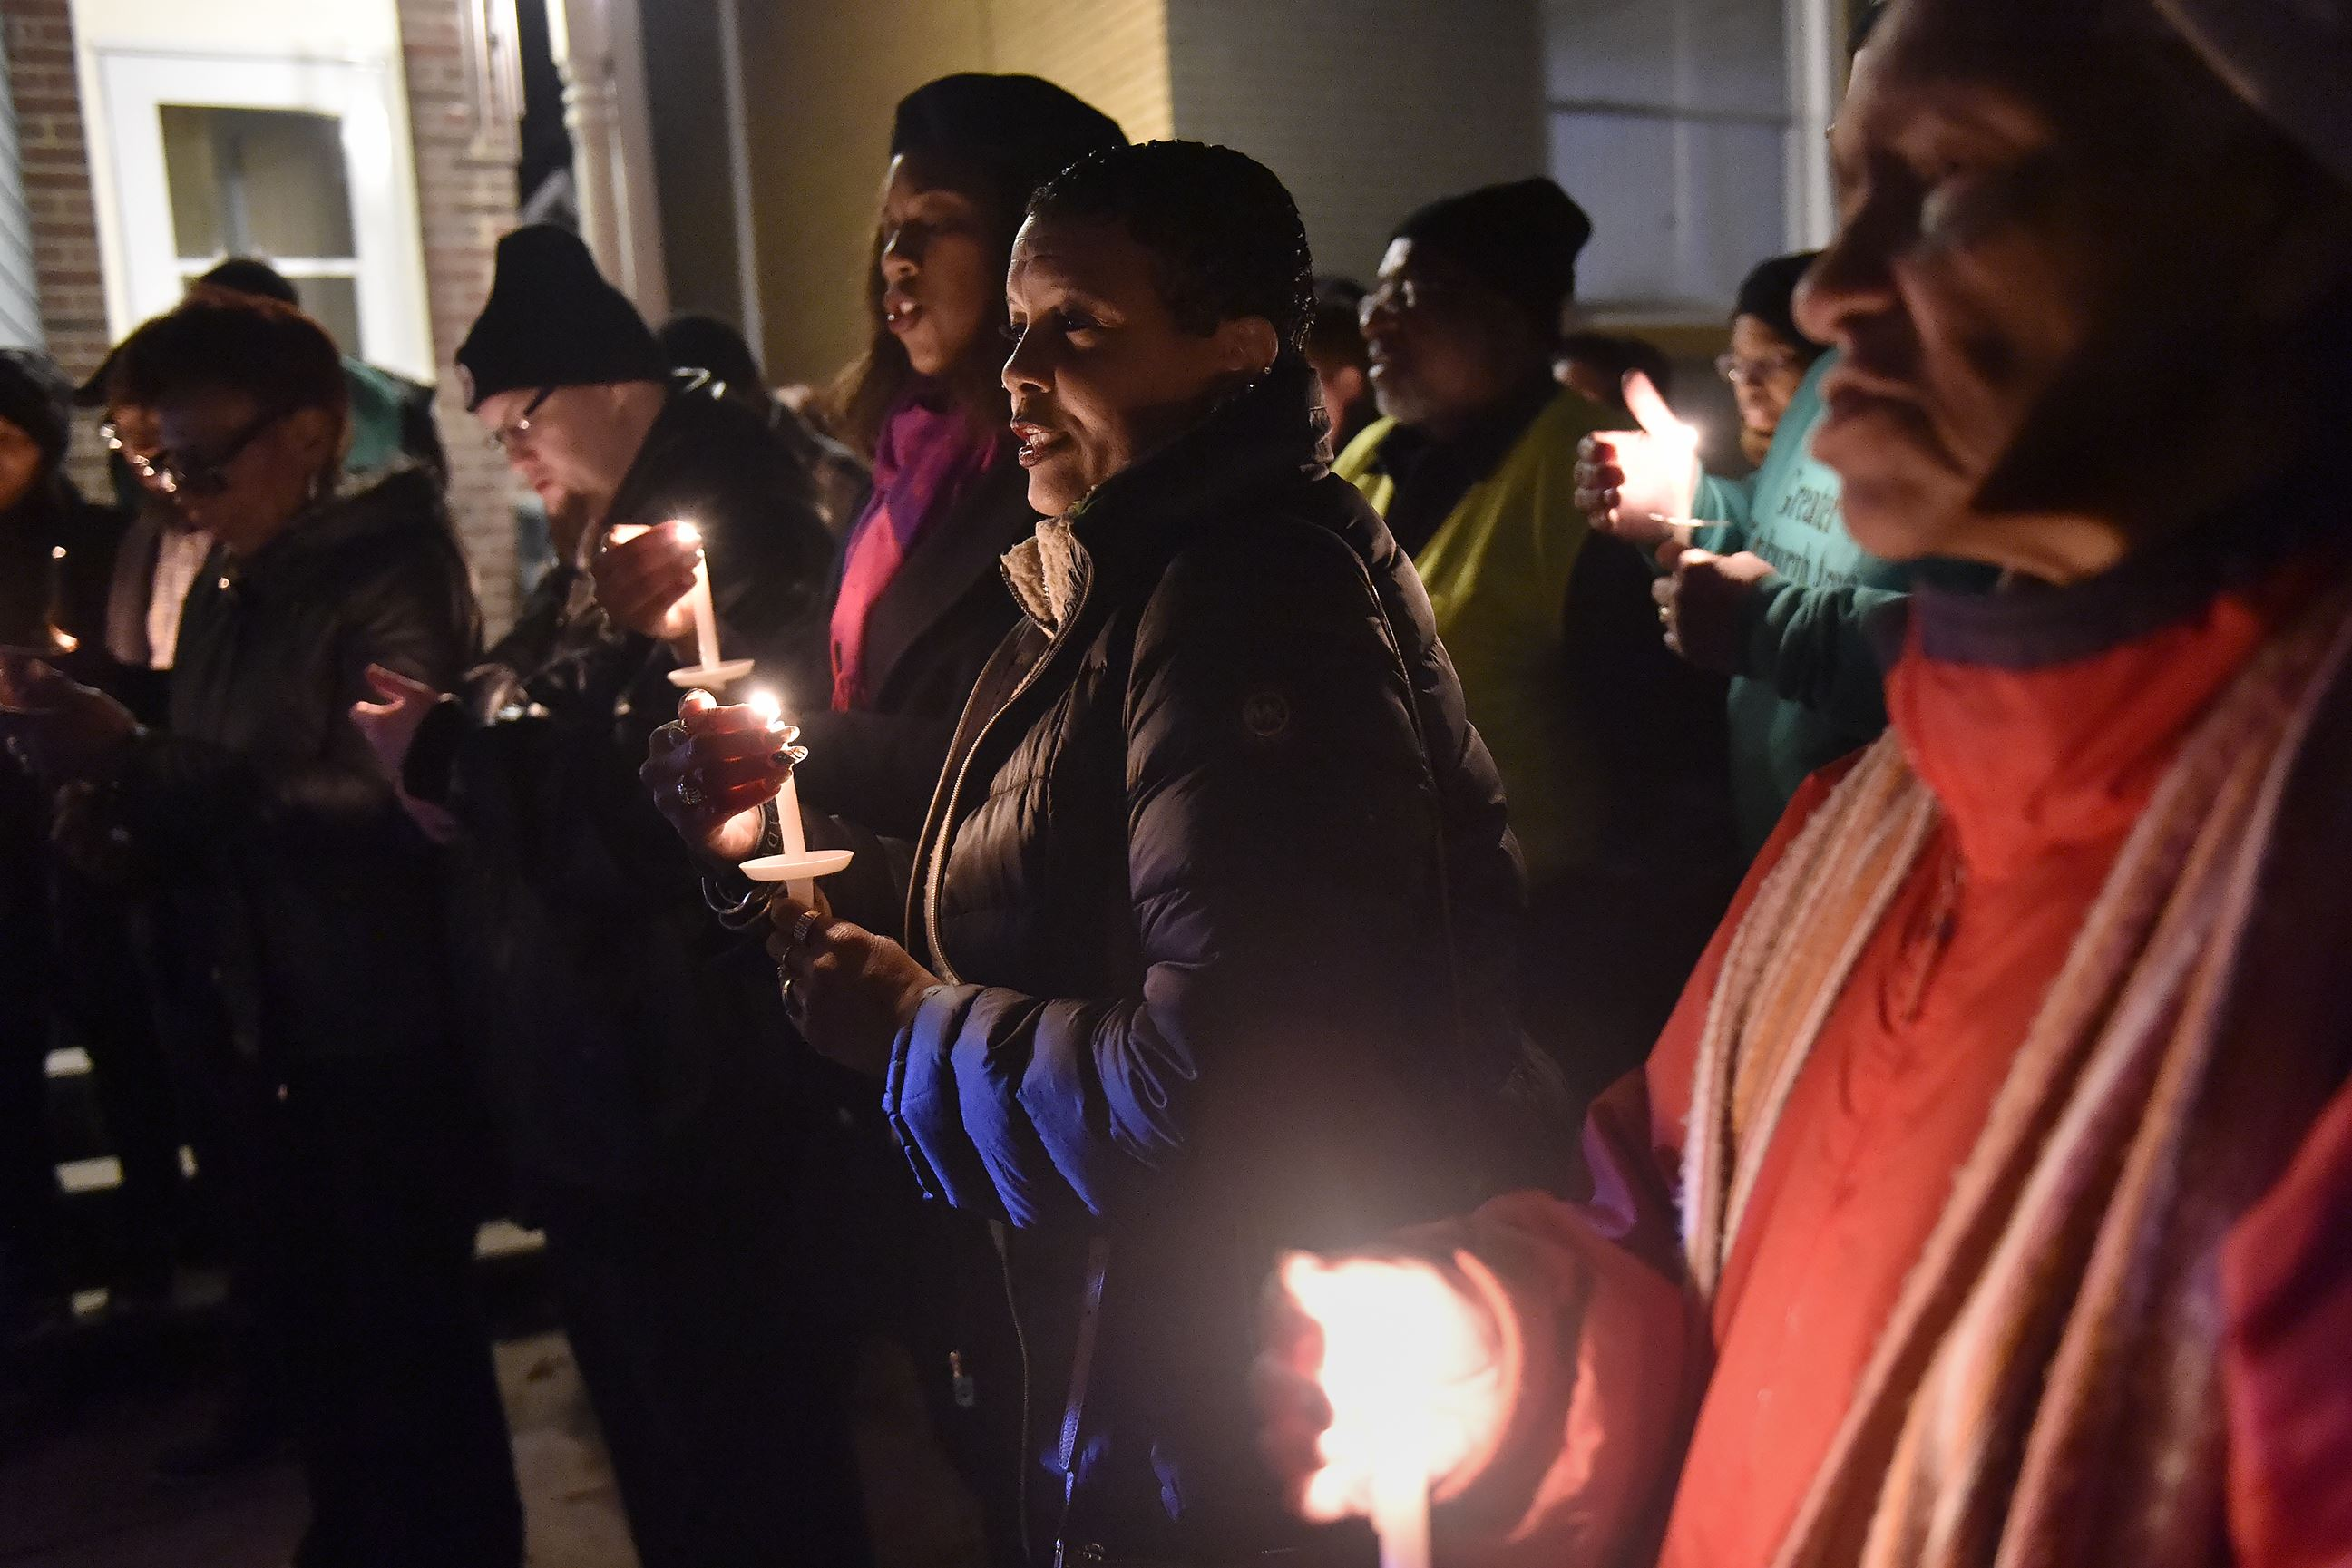 Candlelight Vigil Marks One Year Since Wilkinsburg